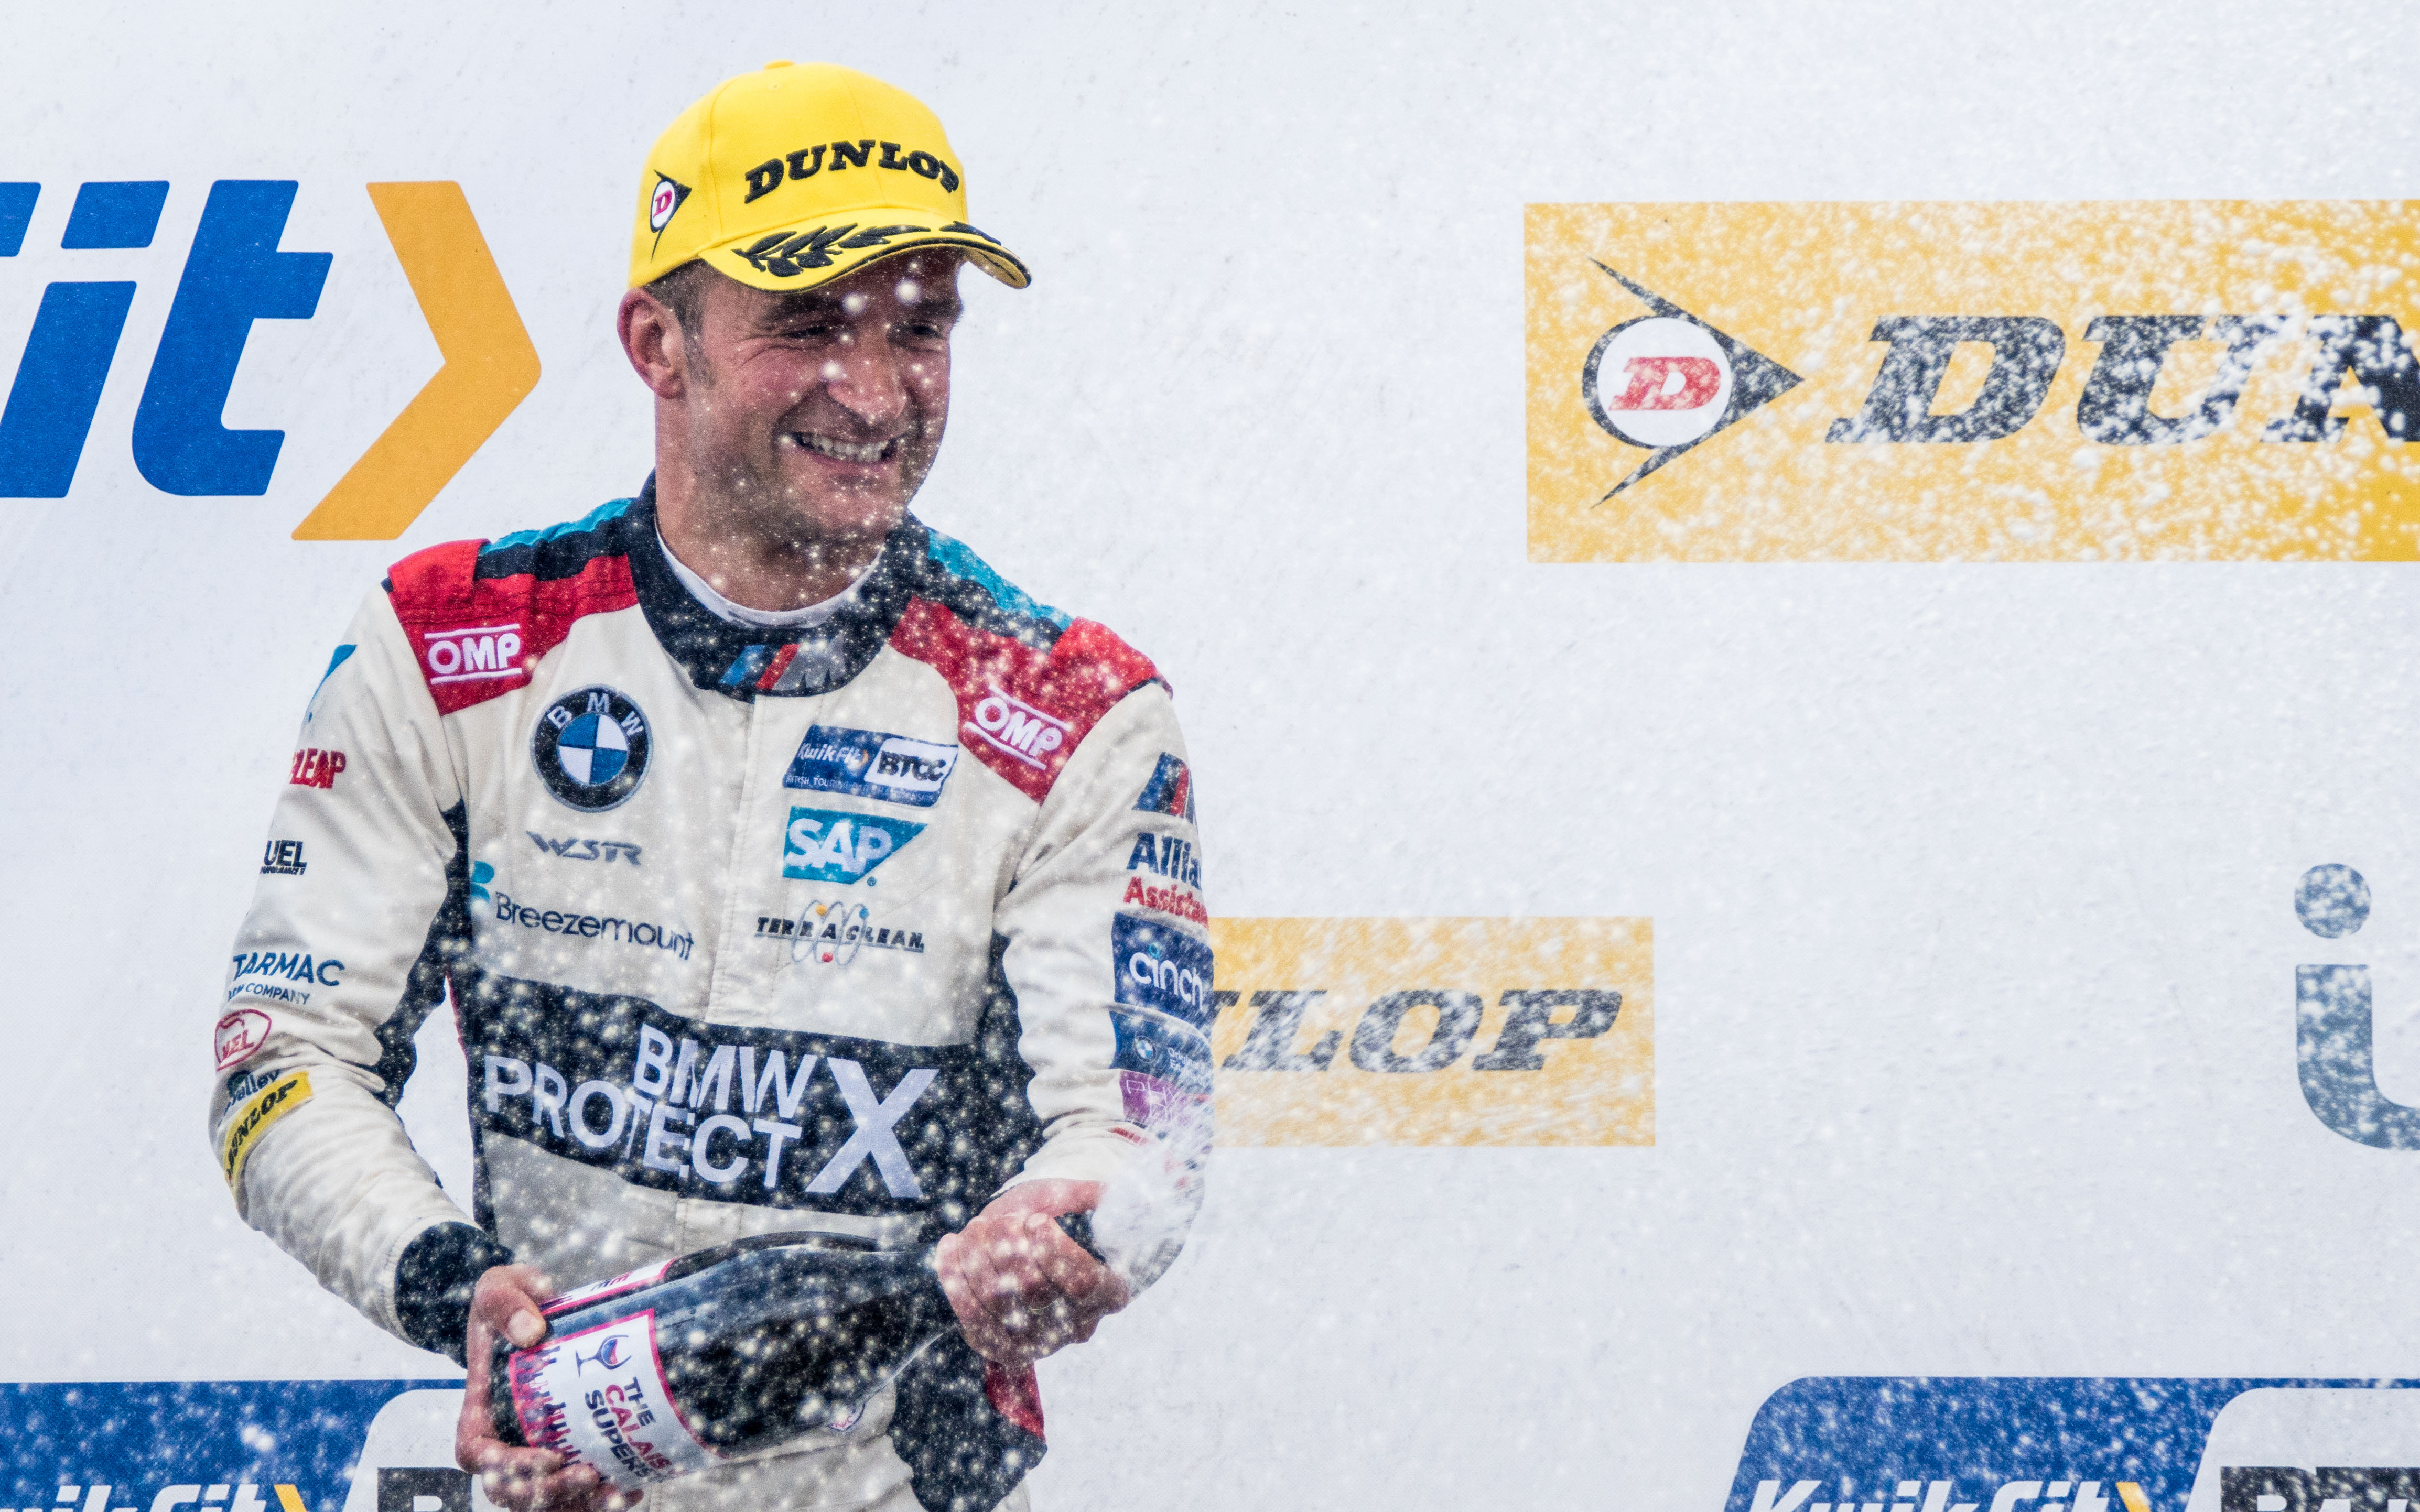 TURKINGTON'S CLASS ACT AT SENSATIONAL SILVERSTONE